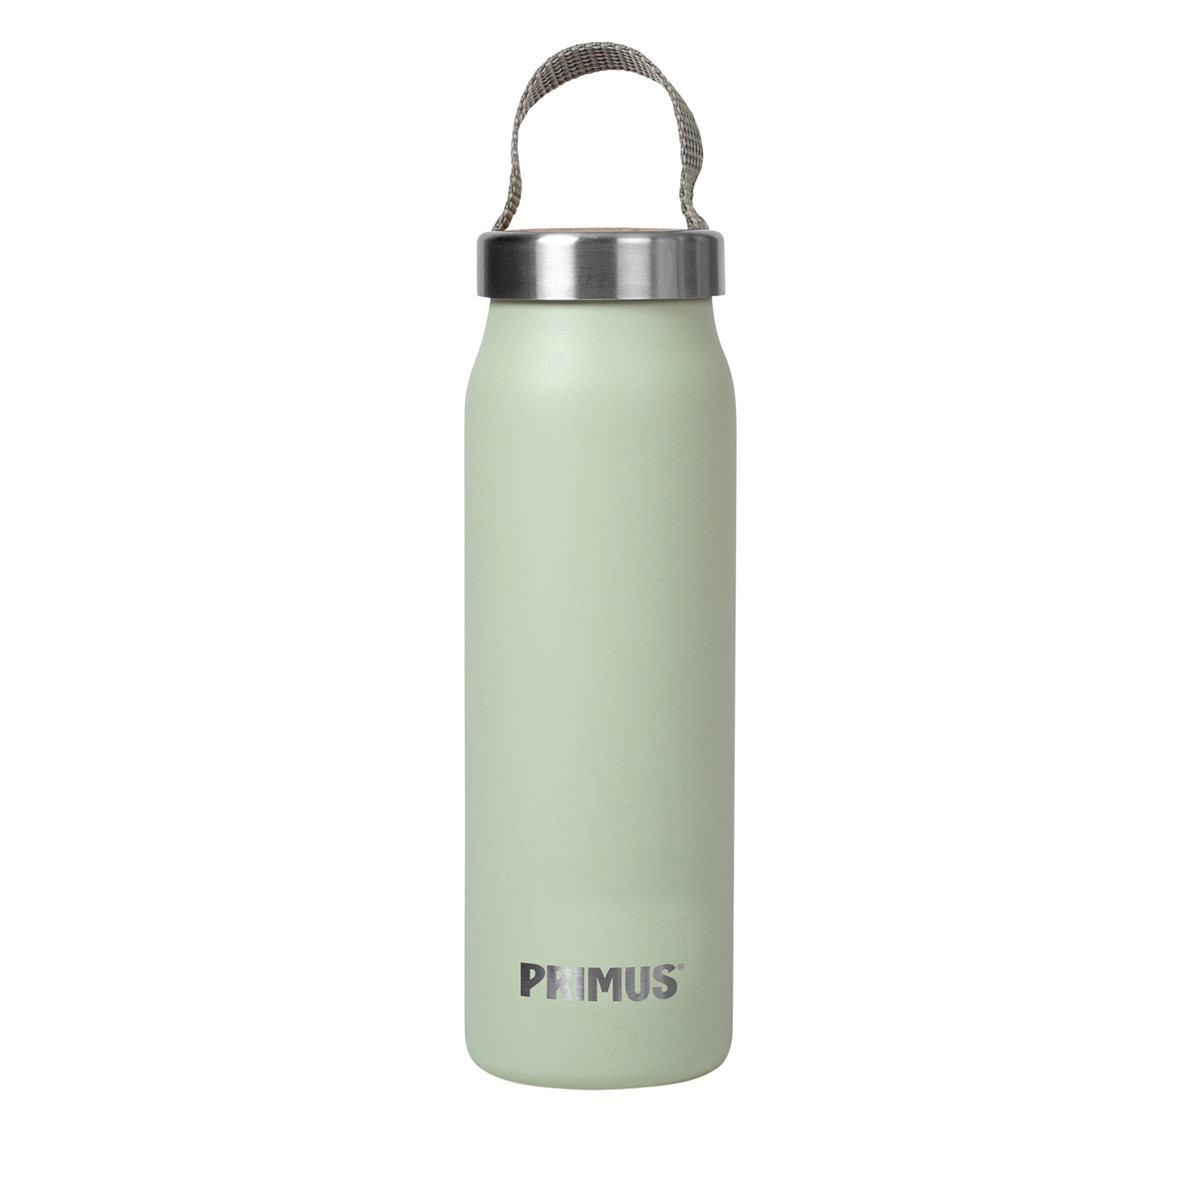 Klunken Vacuum Stainless Steel Bottle in Mint Green